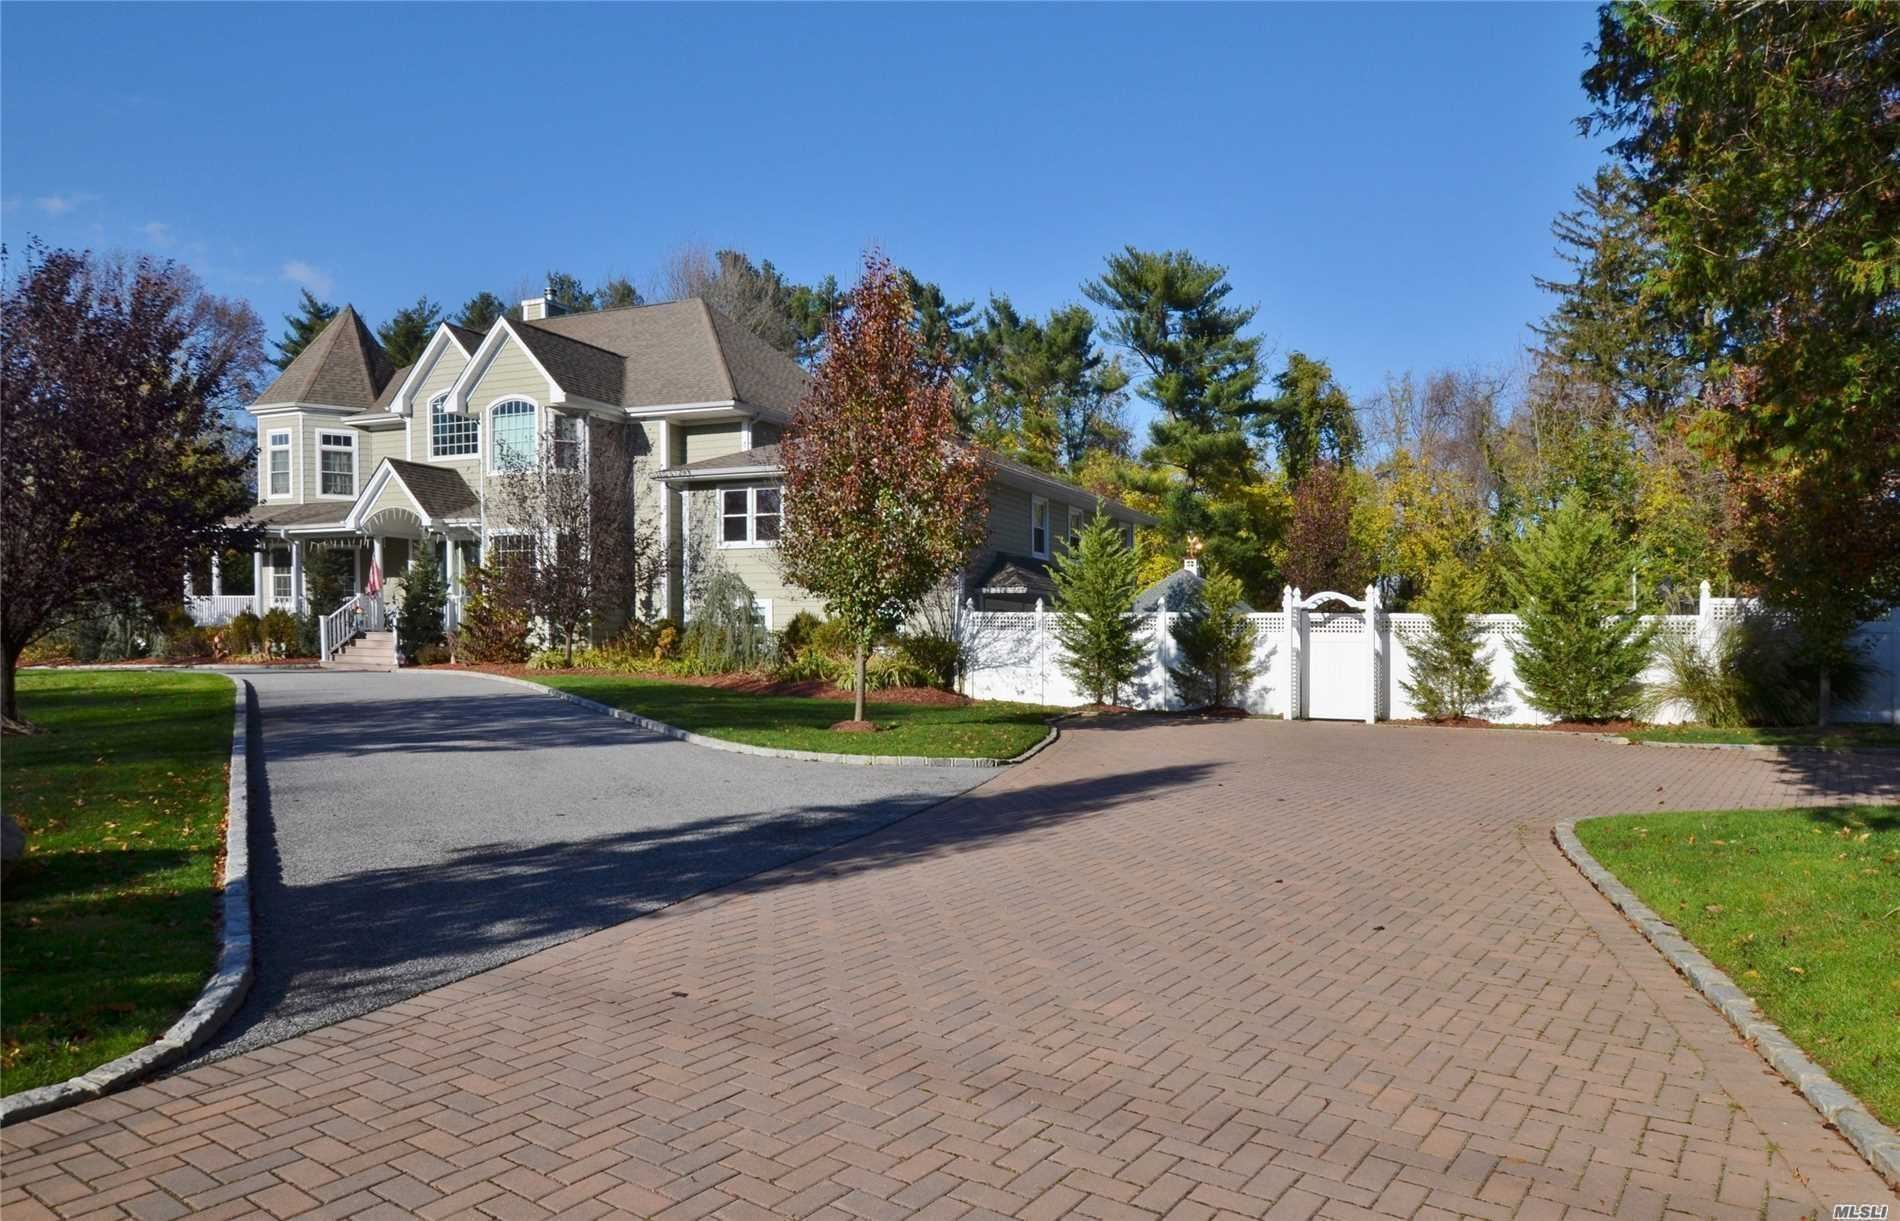 5 Rocklyn Court, Huntington, NY 11743 - MLS#: 3225446